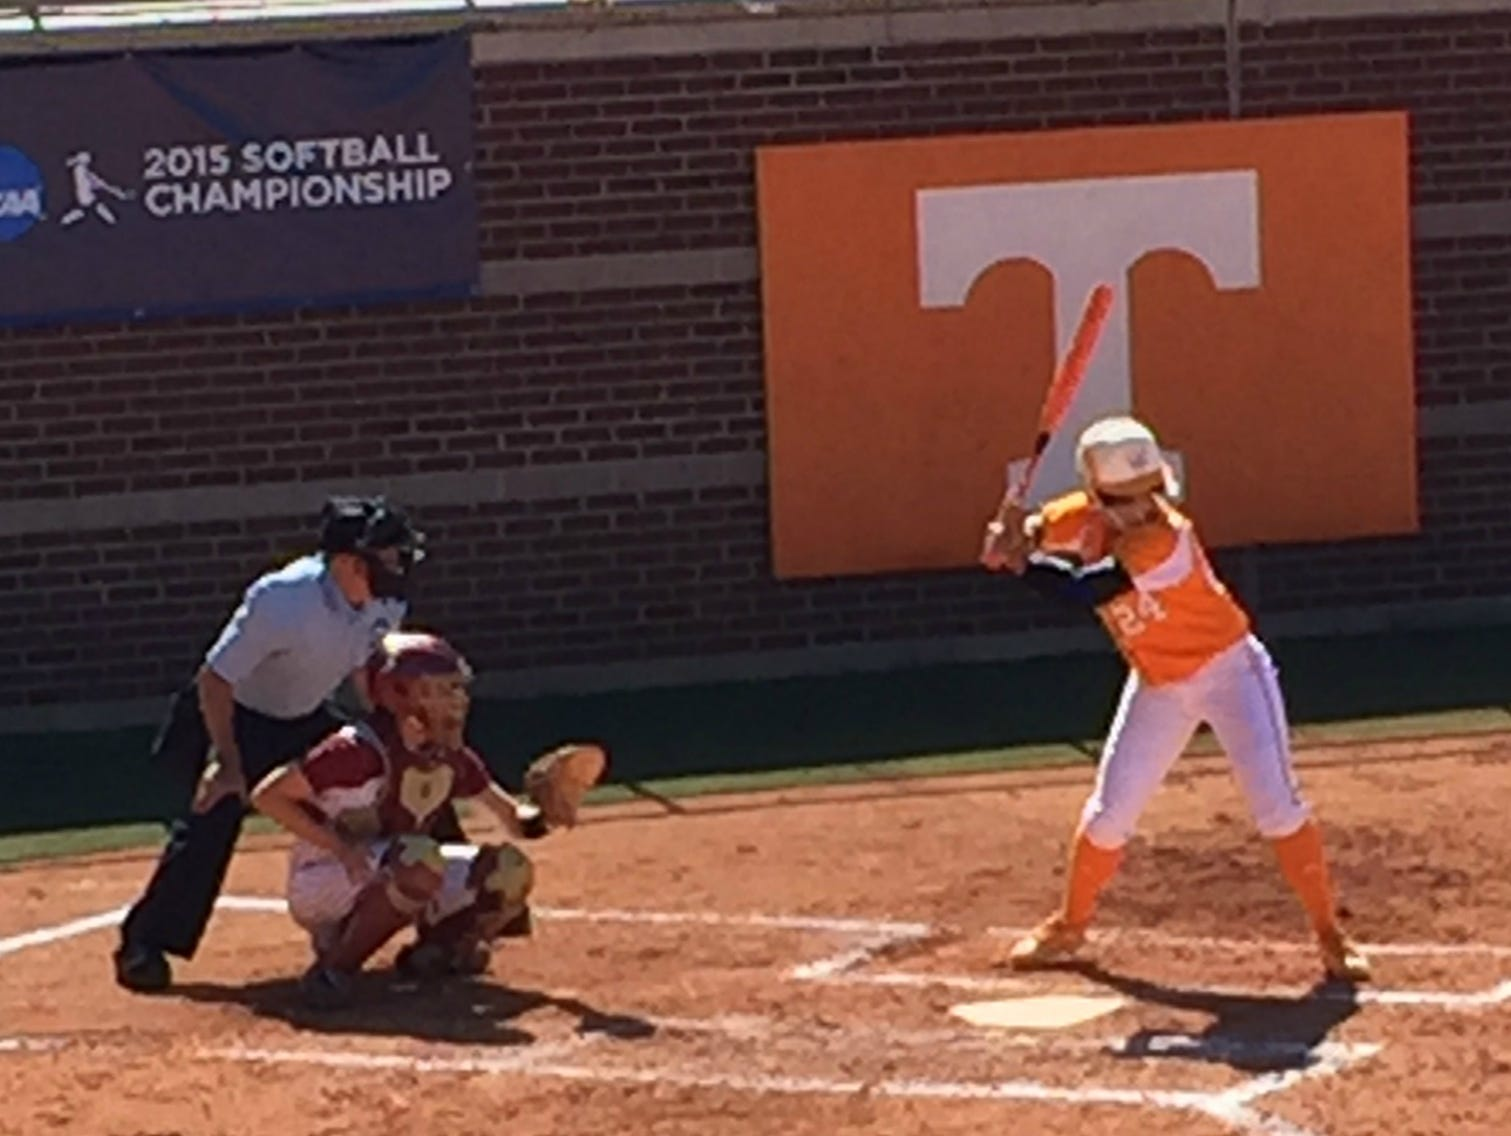 Annie Aldrete bats in the fourth inning of Game 2 of Tennessee's Super Regional against Florida State.